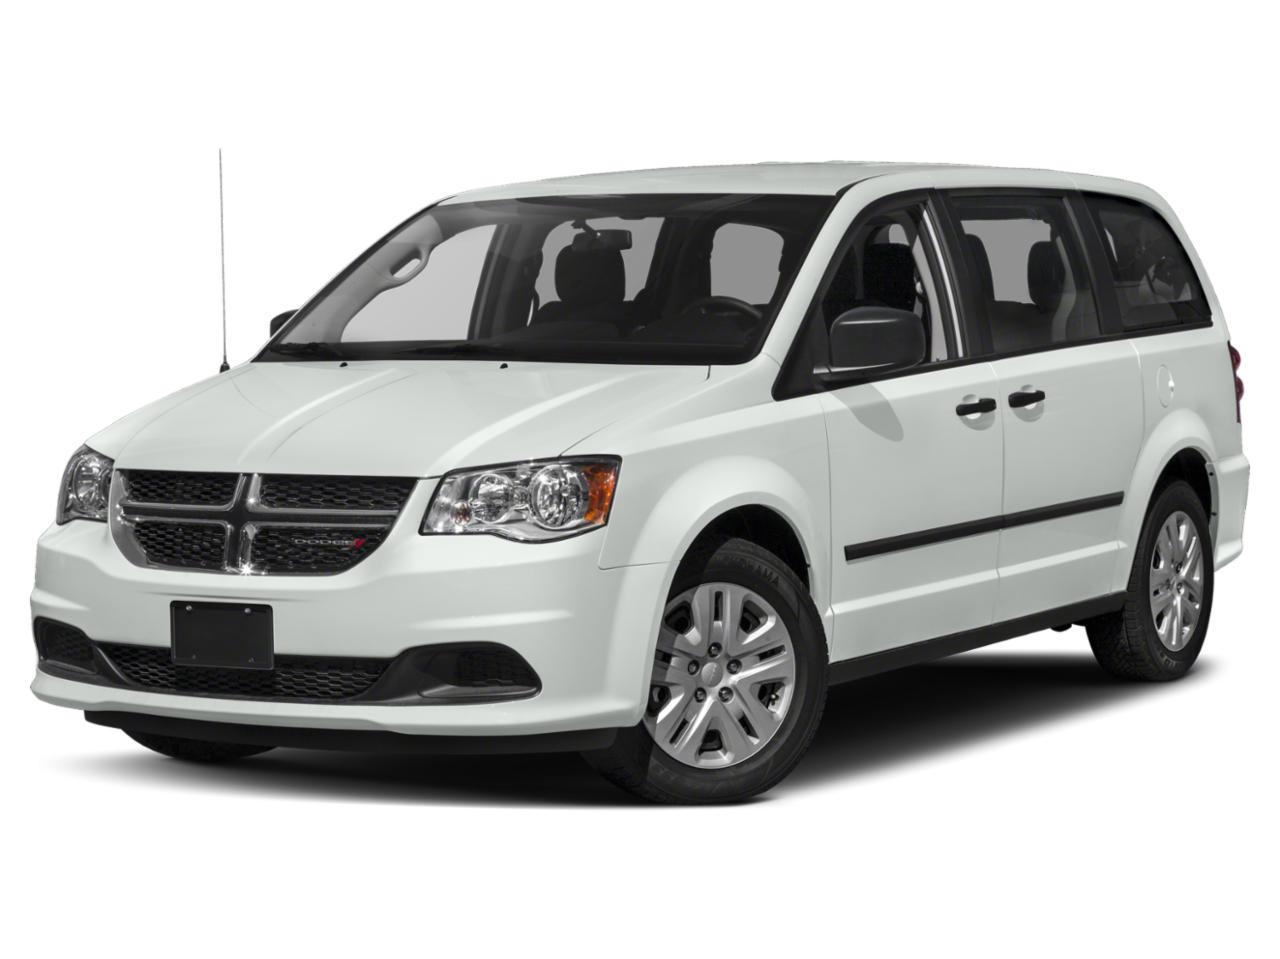 2019 Dodge Grand Caravan Vehicle Photo in Smyrna, DE 19977